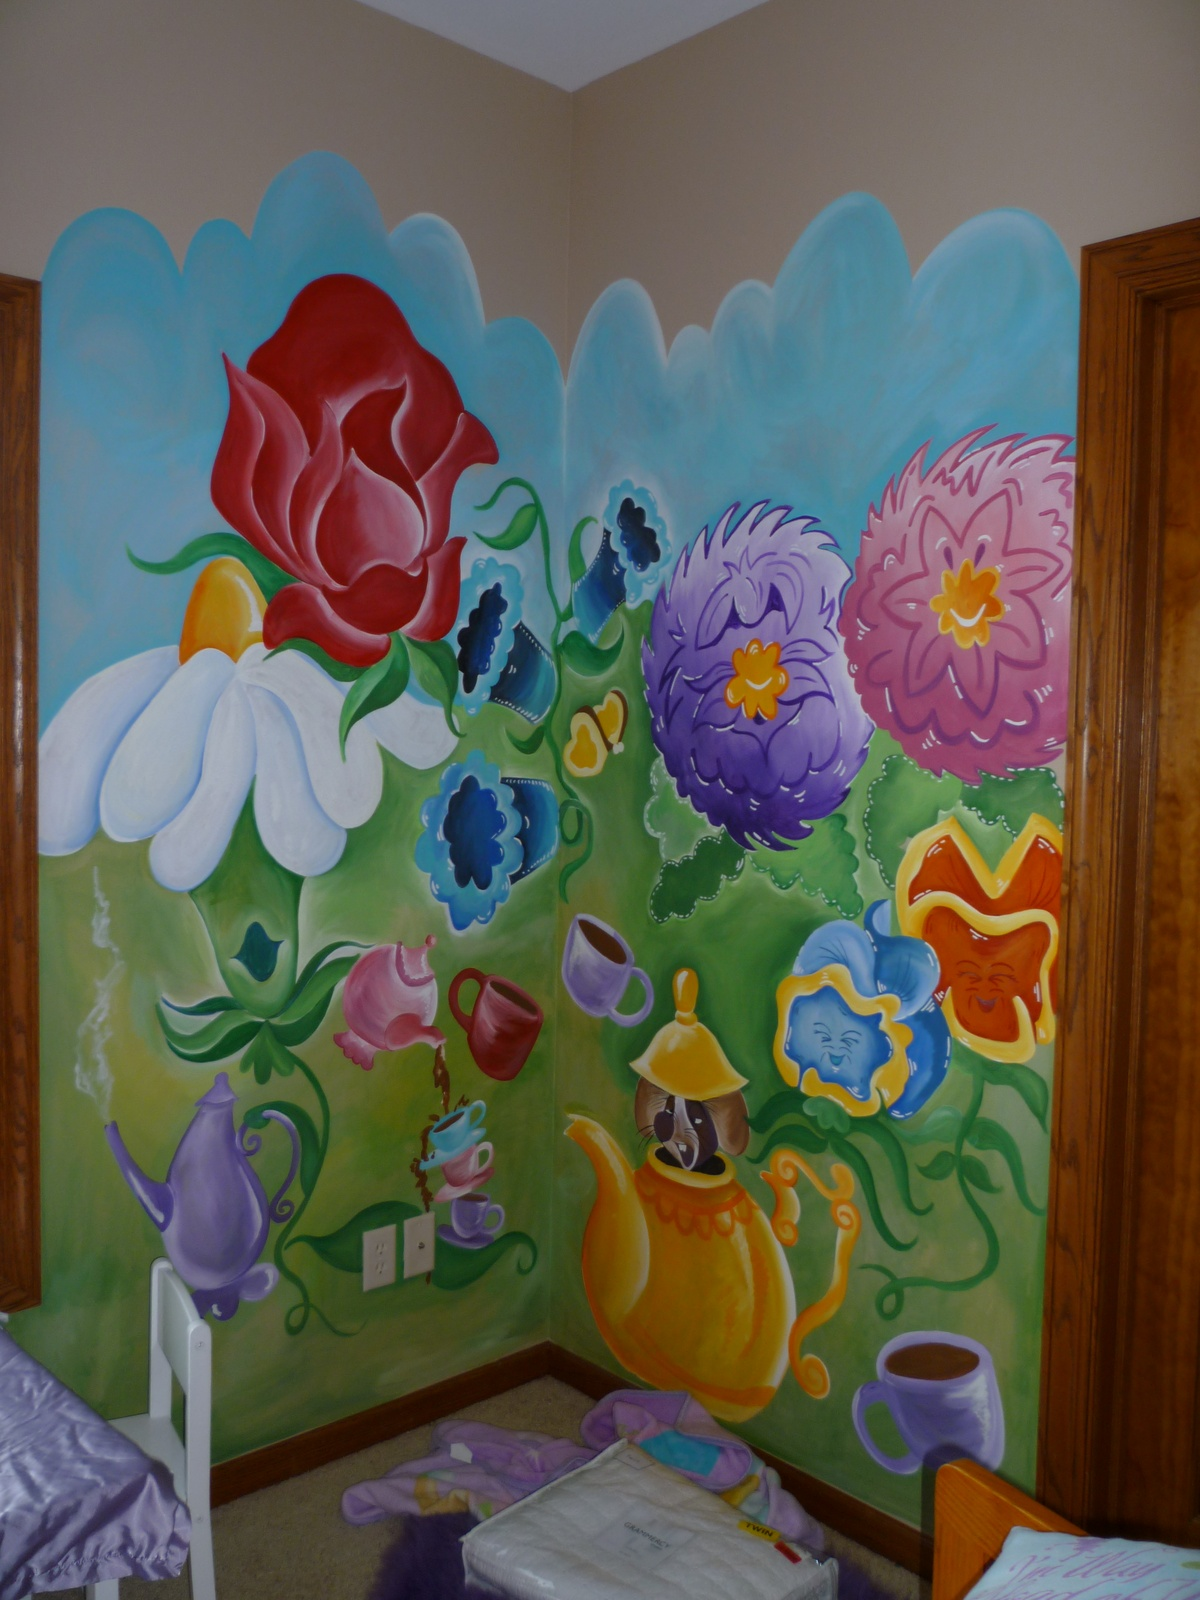 1000 images about disney room on pinterest for Mural painting ideas